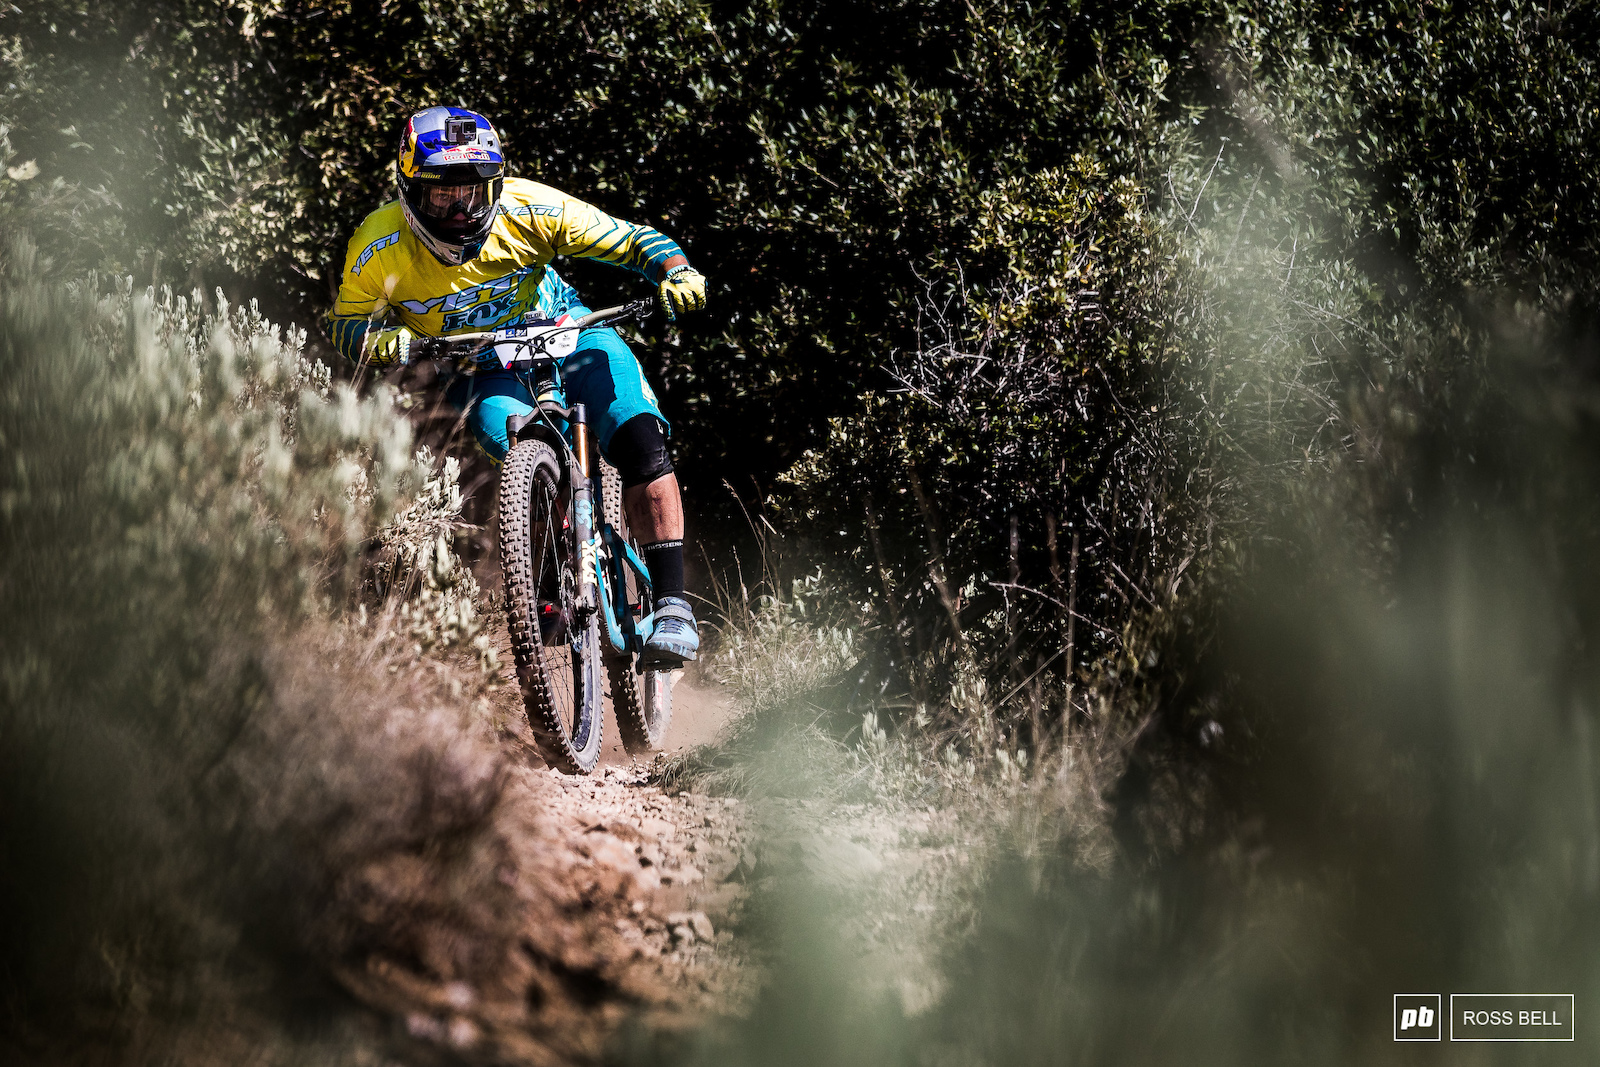 Richie Rude finding the limits of the loose gravel on stage 2.